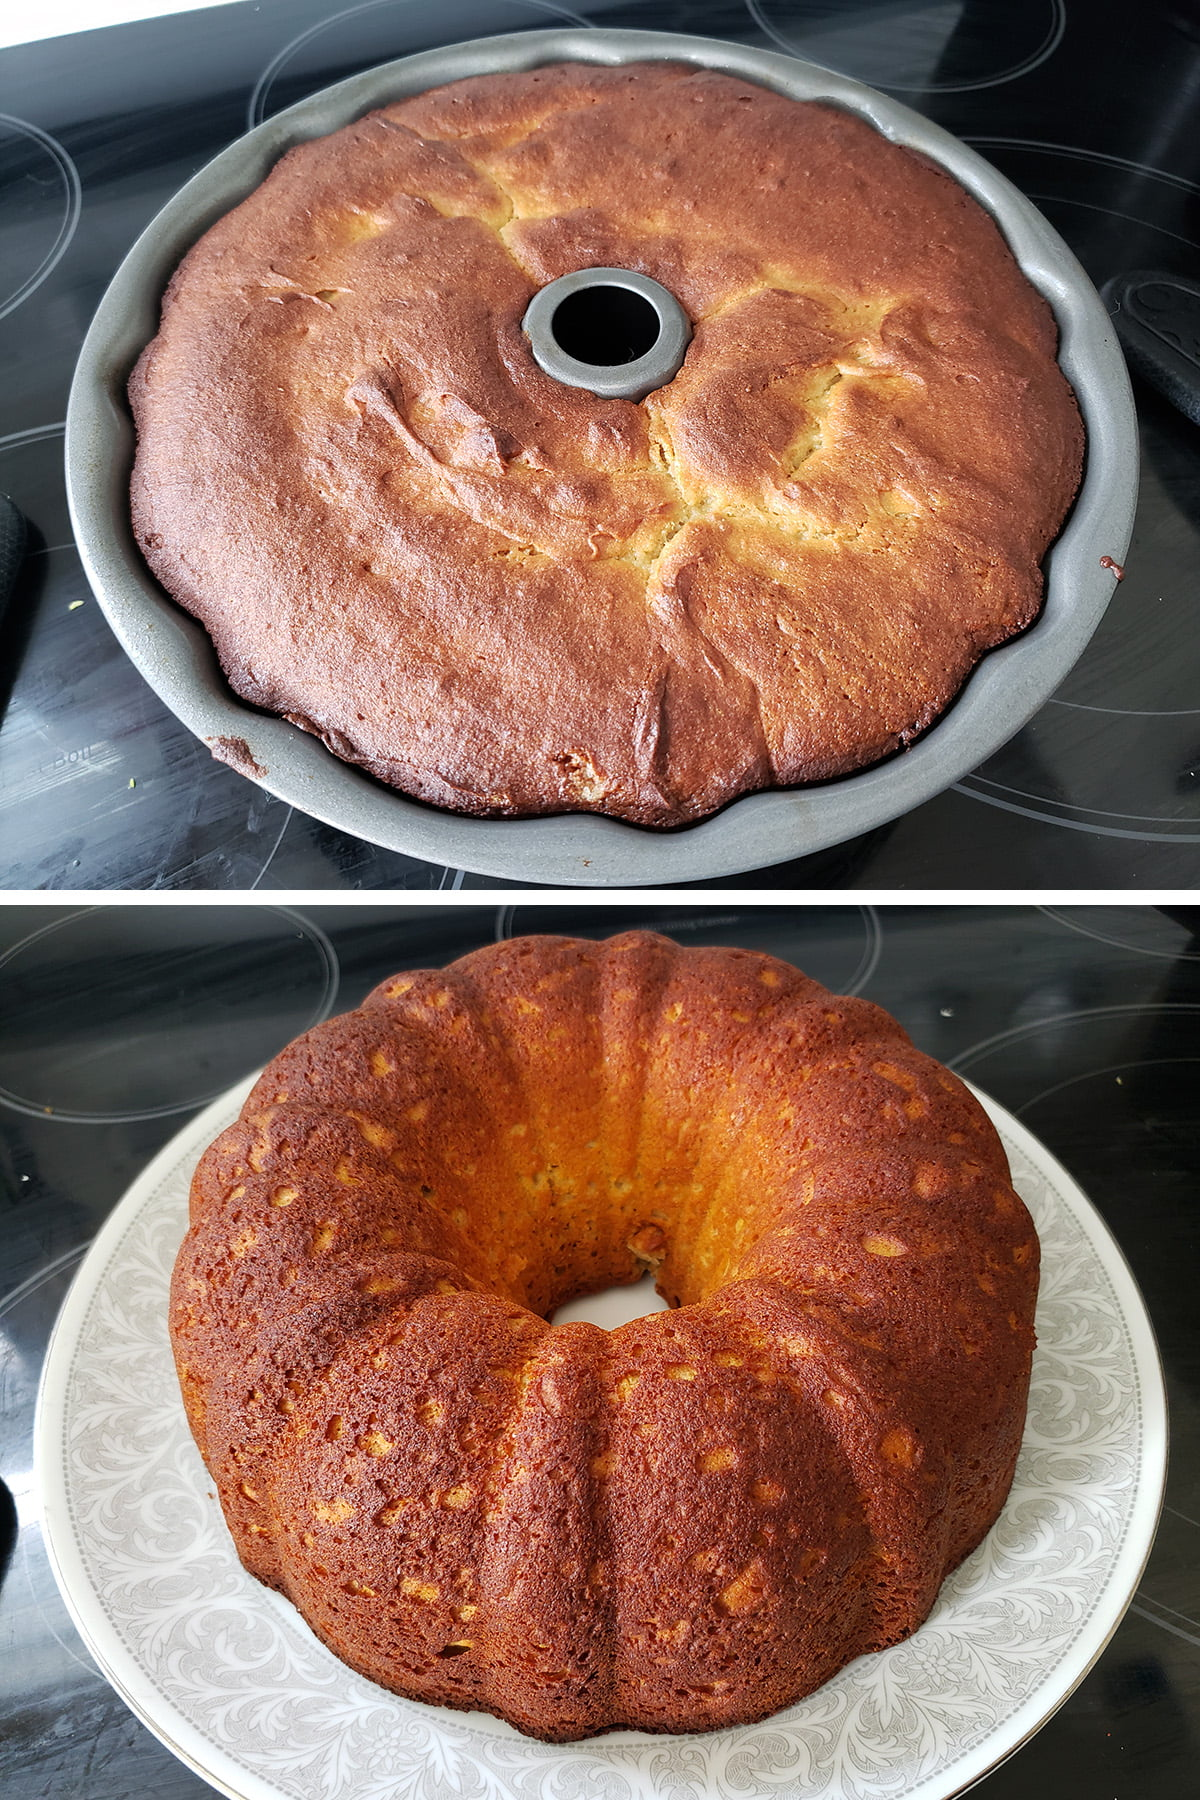 A two part compilation image showing the baked paska in the pan, and then after being turned out on the serving plate.